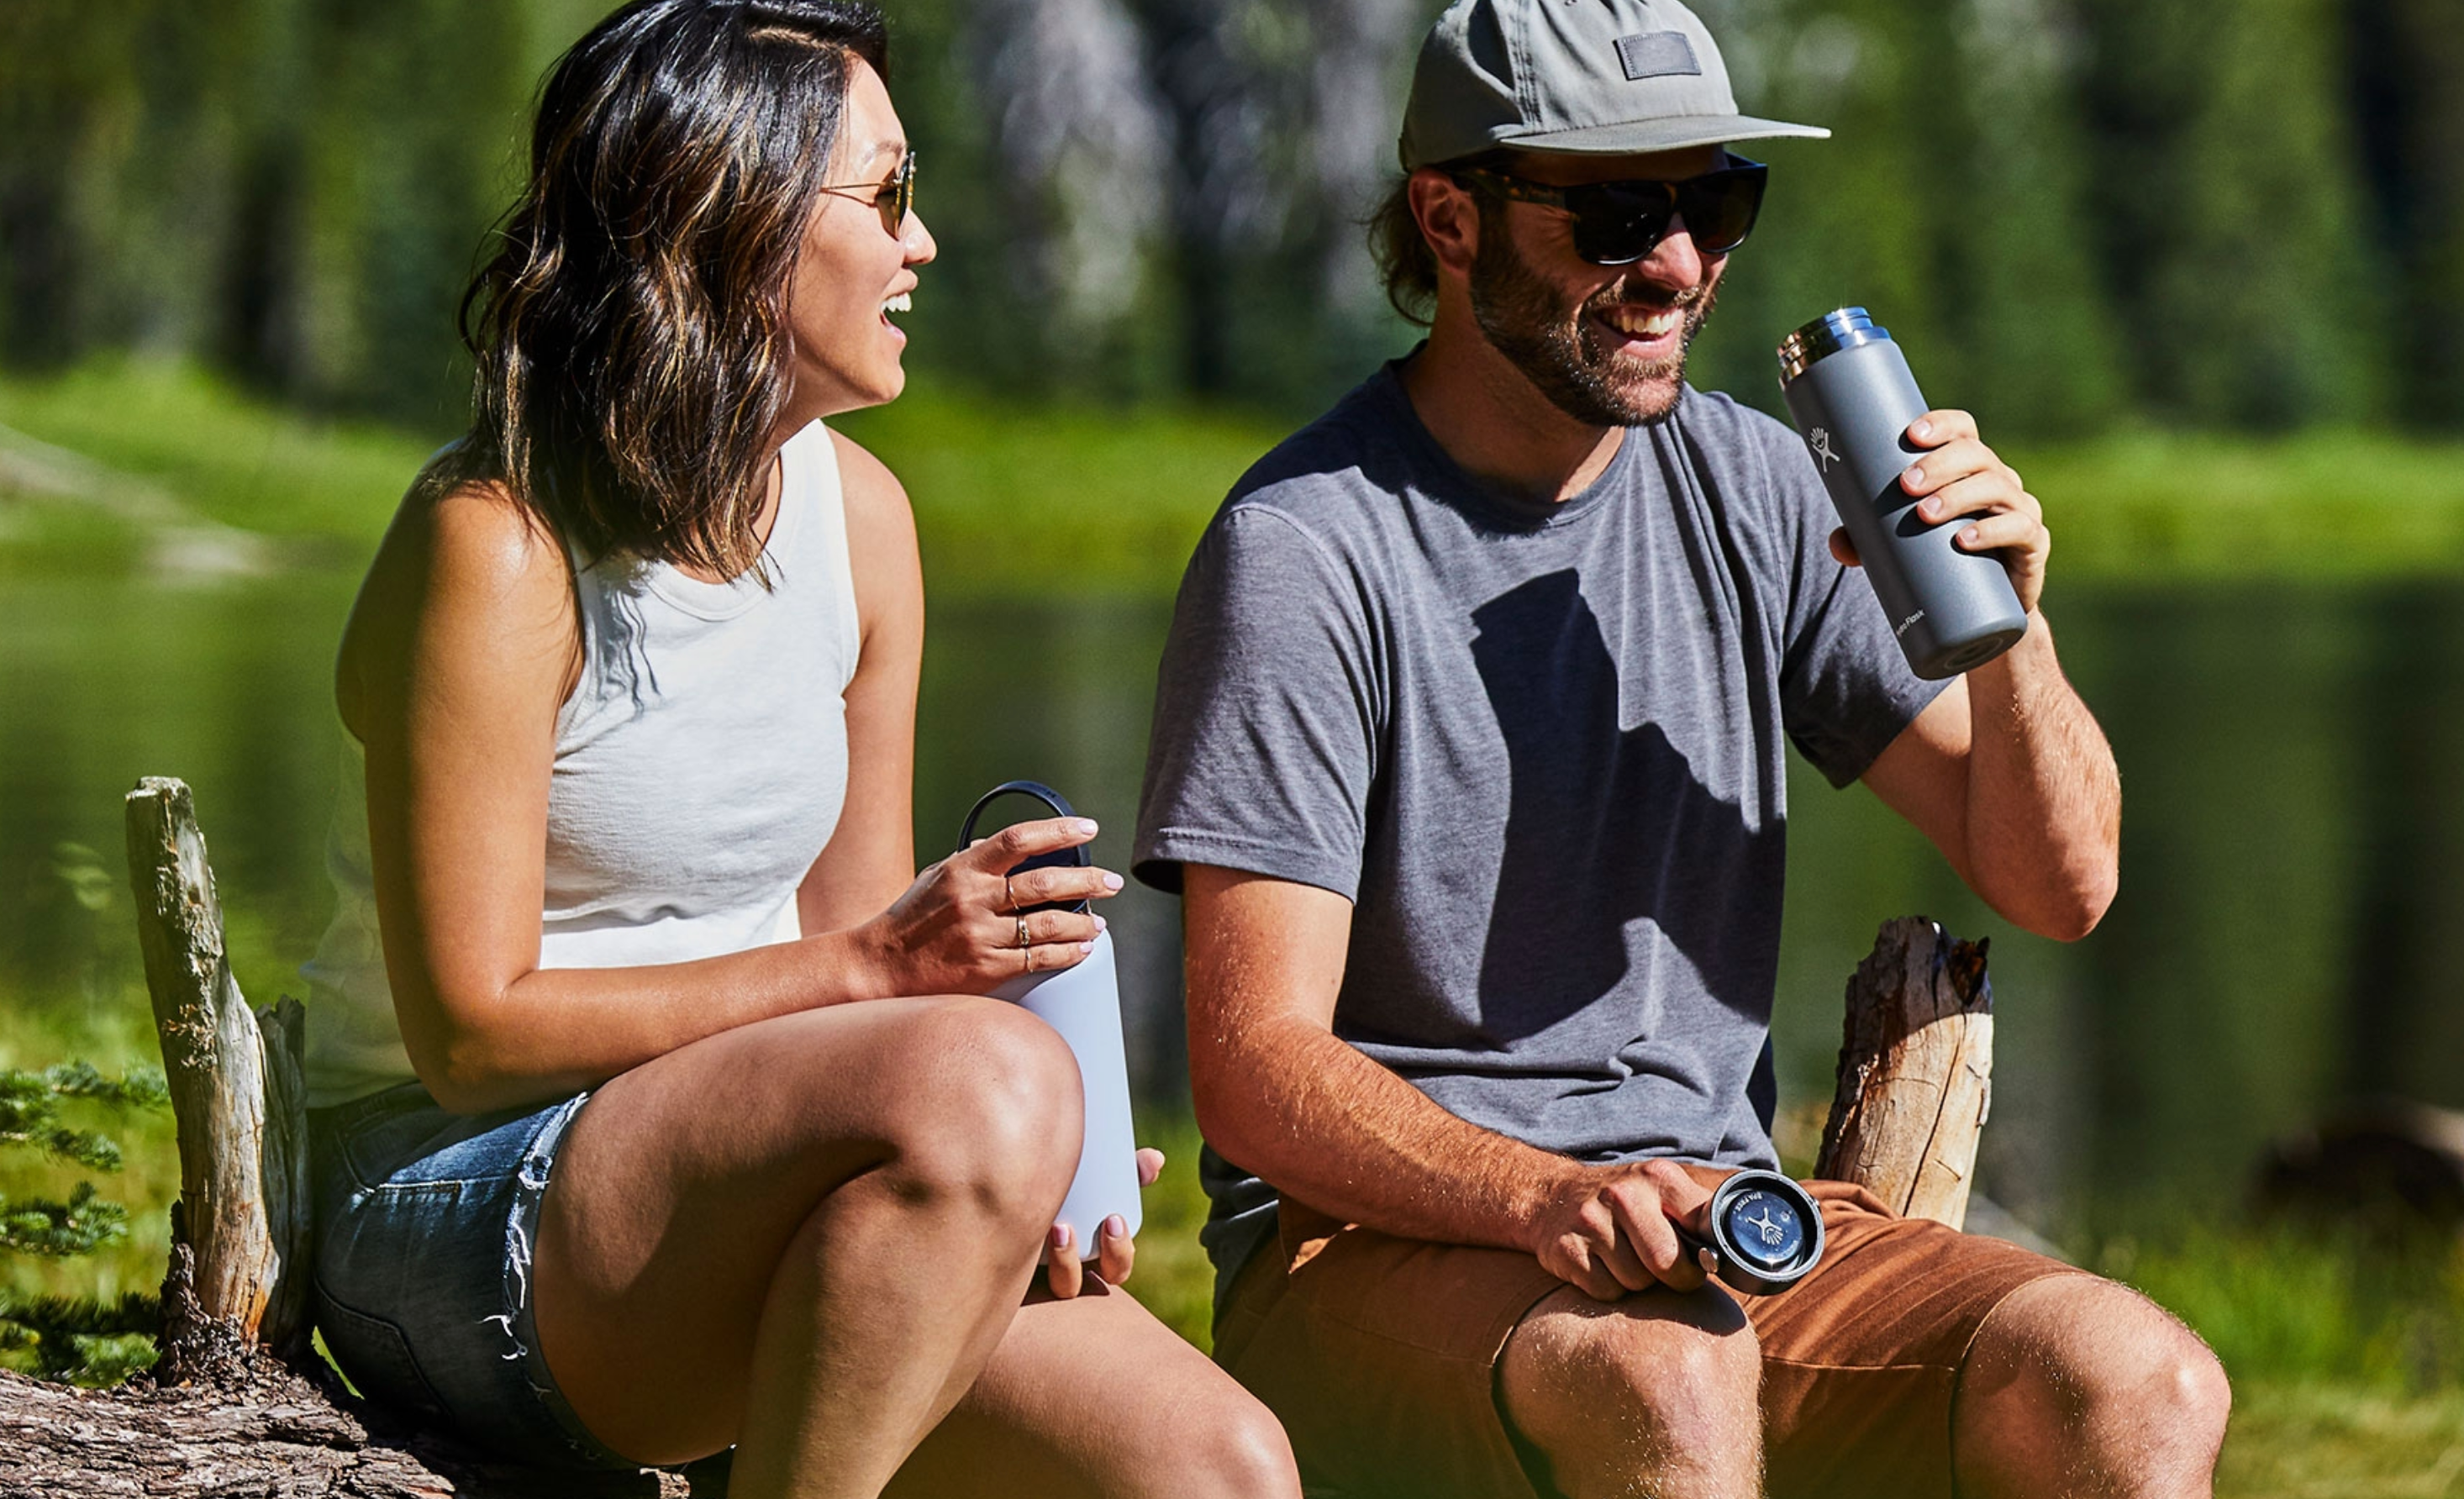 HydroFlask 20 oz Wide Mouth Bottle